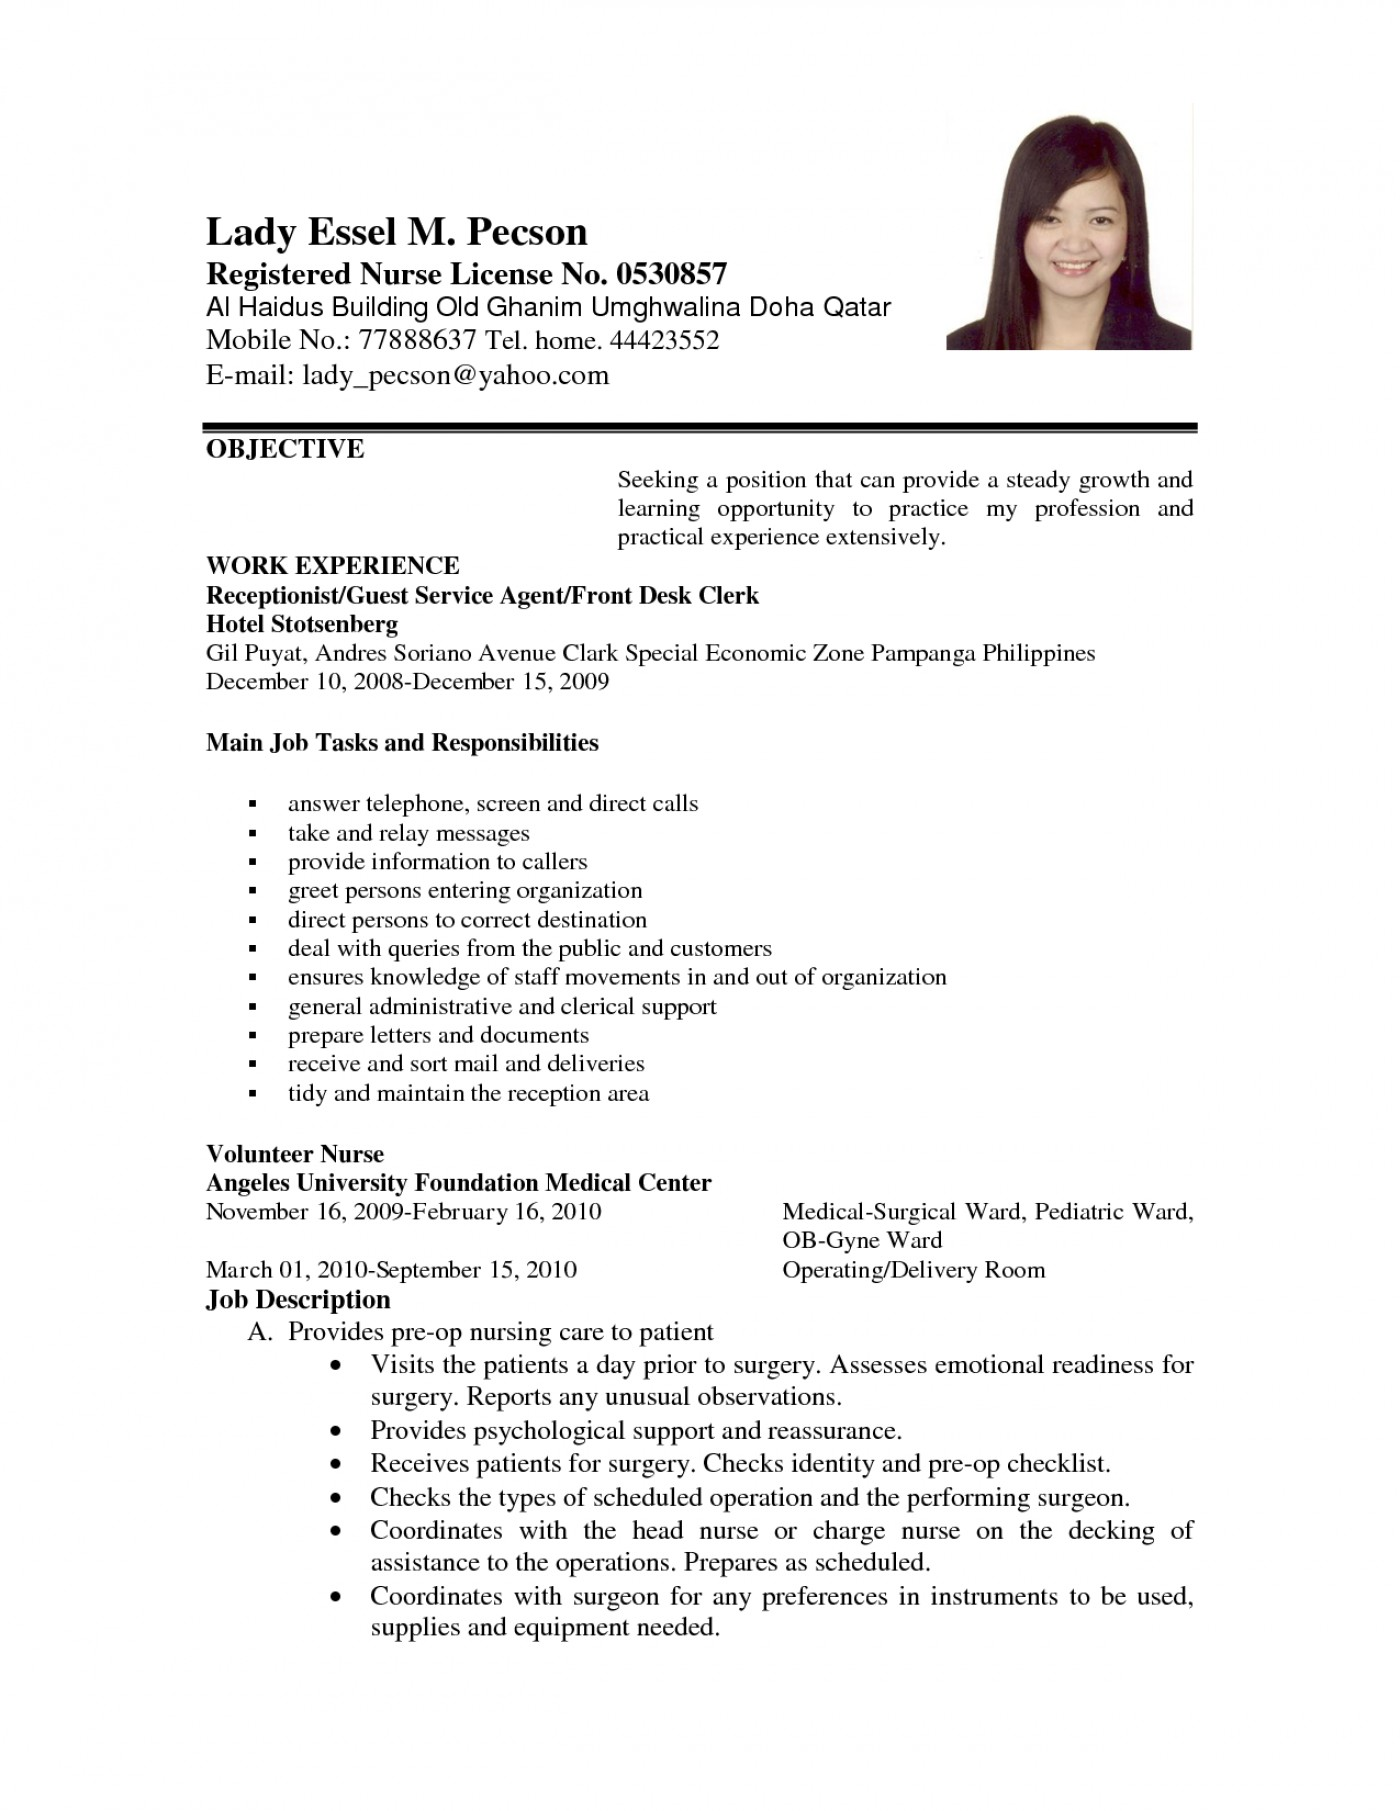 Administrative assistant sample resume cover letter chs ap world essay